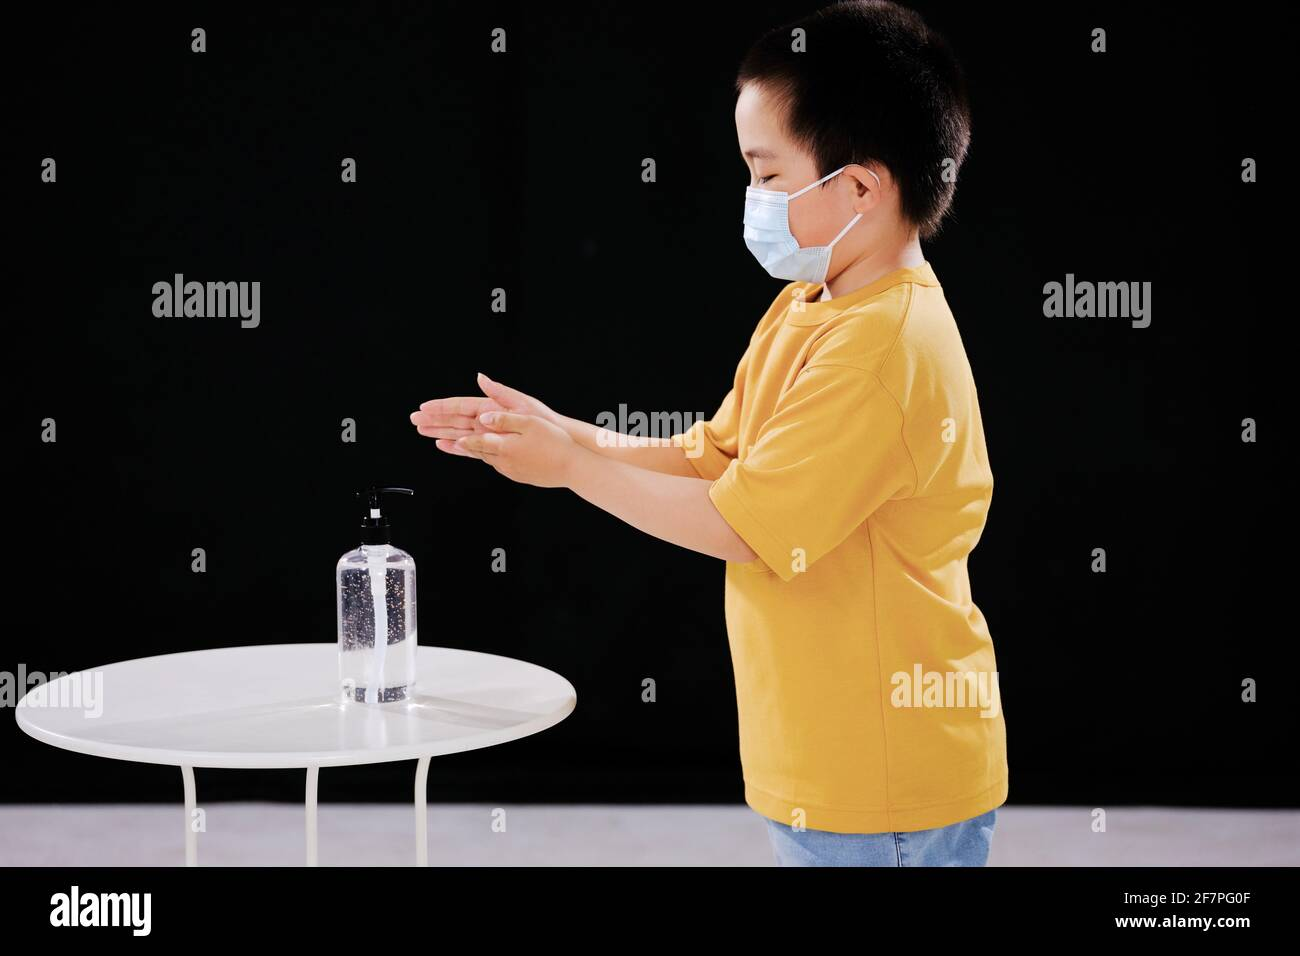 a Little boy with masks use hand sanitizer Stock Photo